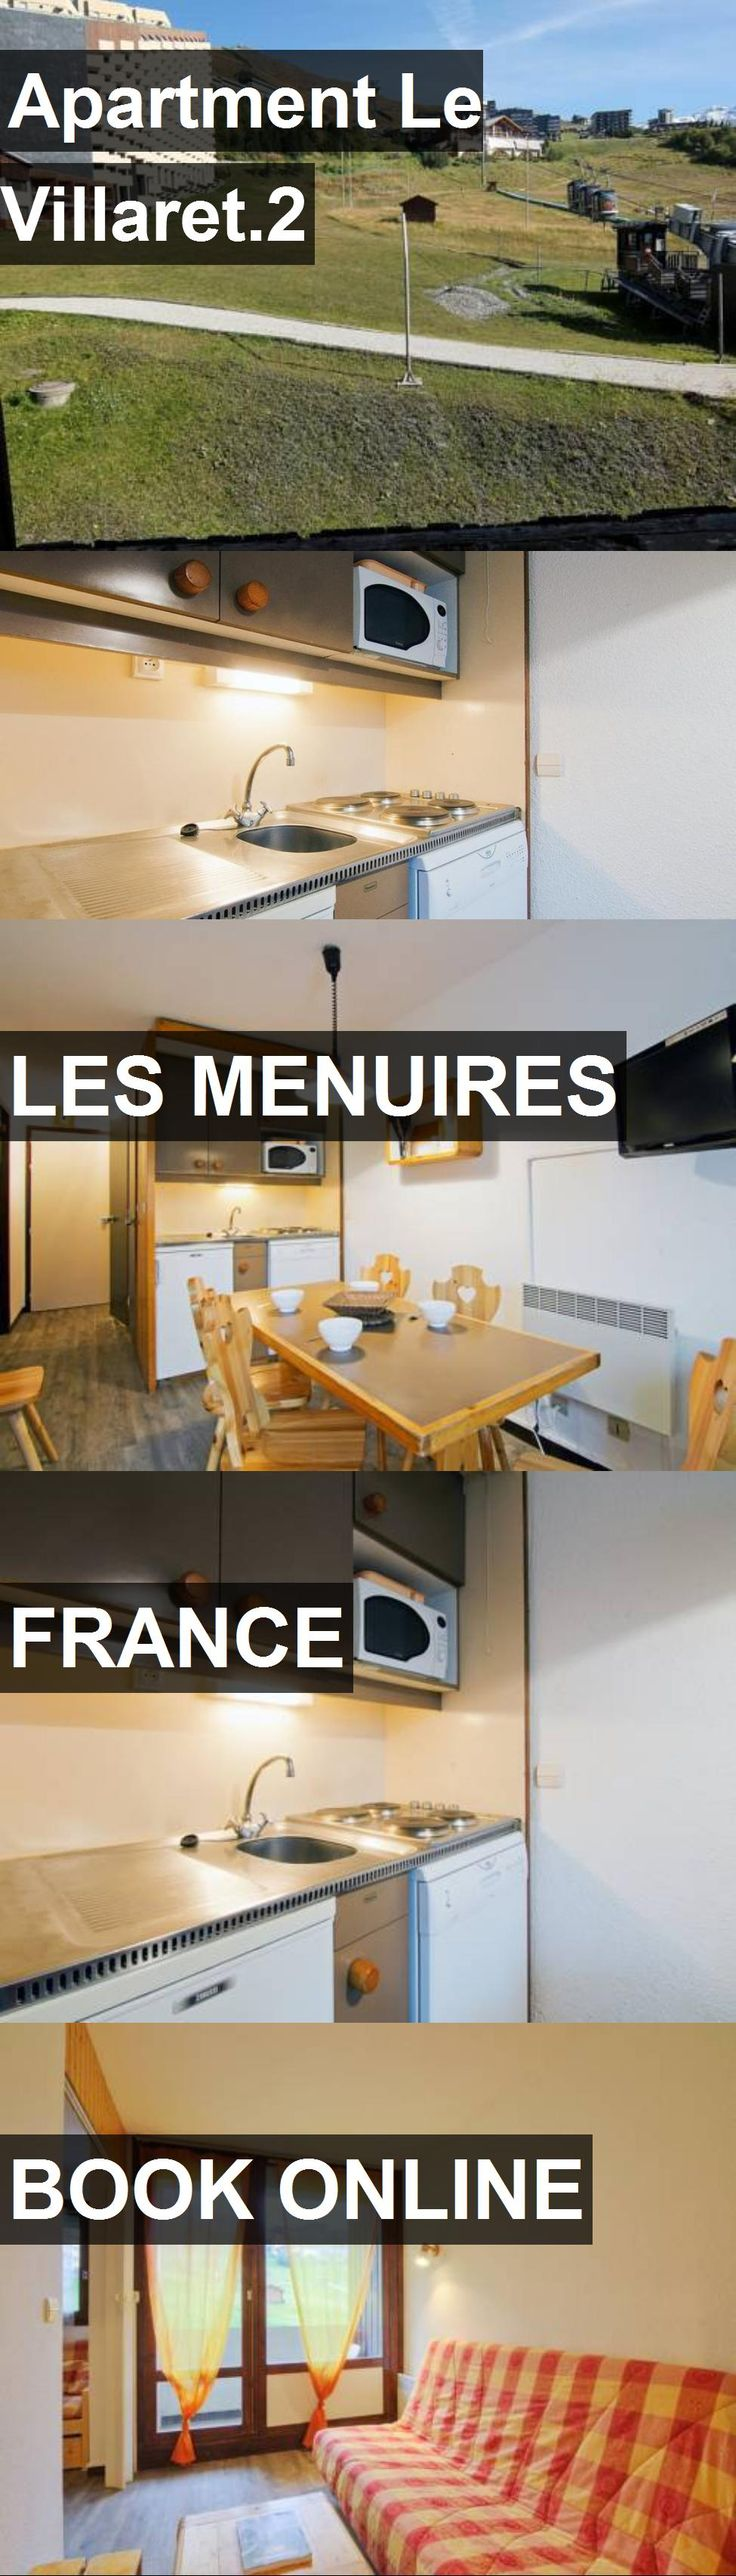 Apartment Le Villaret.2 in Les Menuires, France. For more information, photos, reviews and best prices please follow the link. #France #LesMenuires #travel #vacation #apartment